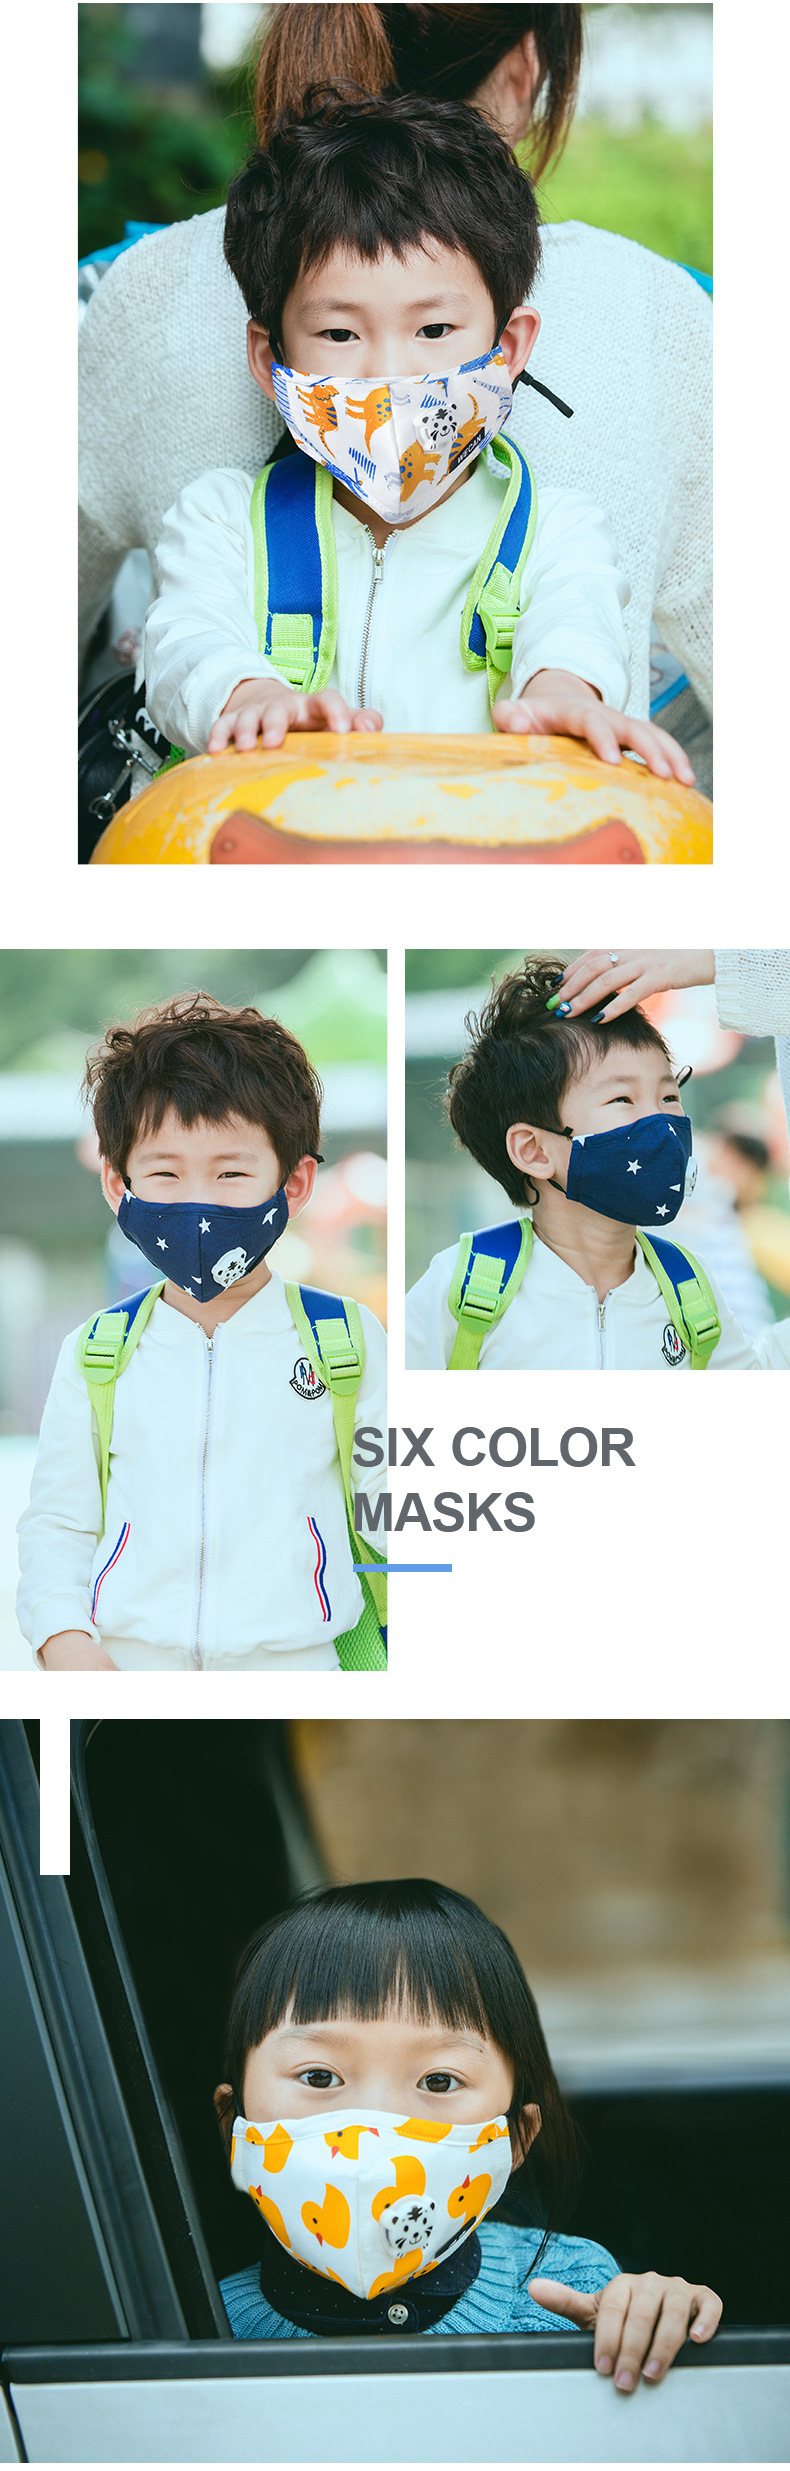 Children masks 1Pcs Respirator Mask With Breathing Valve Washable Cotton Activated Carbon Filter Mouth Masks Anti Dust Allergy